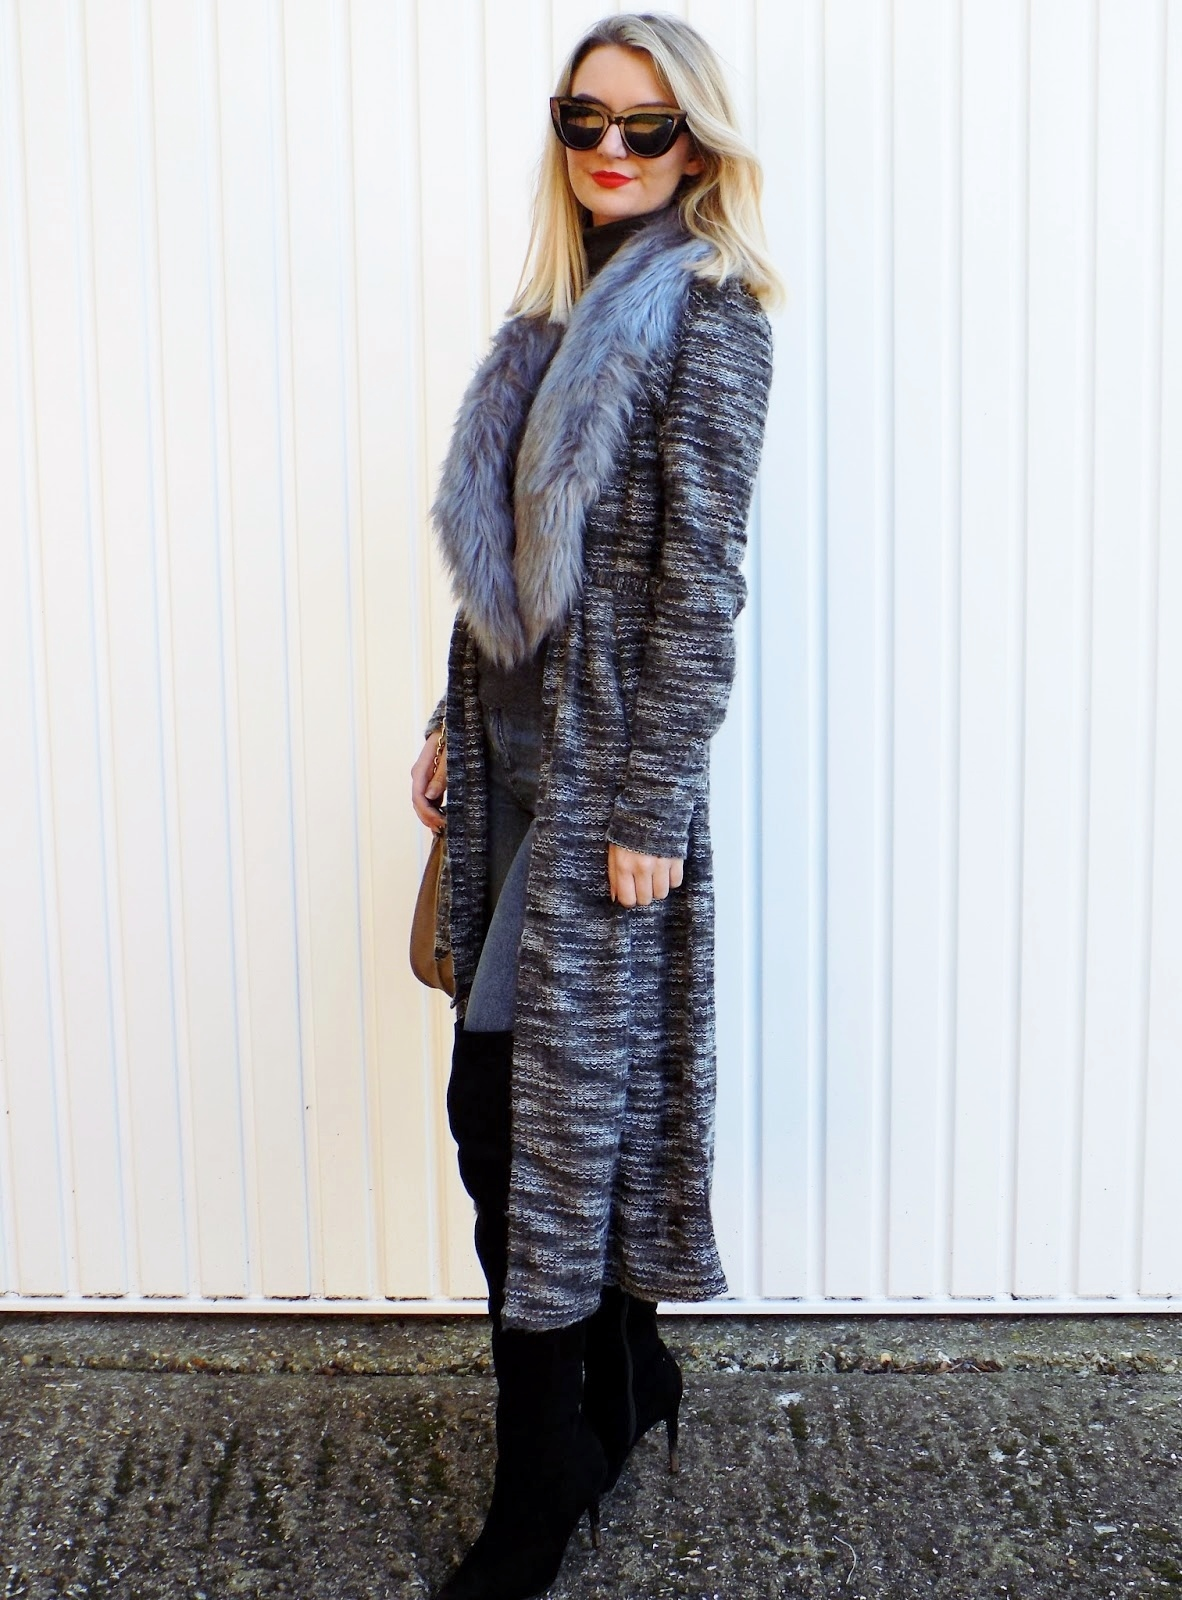 street style image wearing cosy chic knitwear